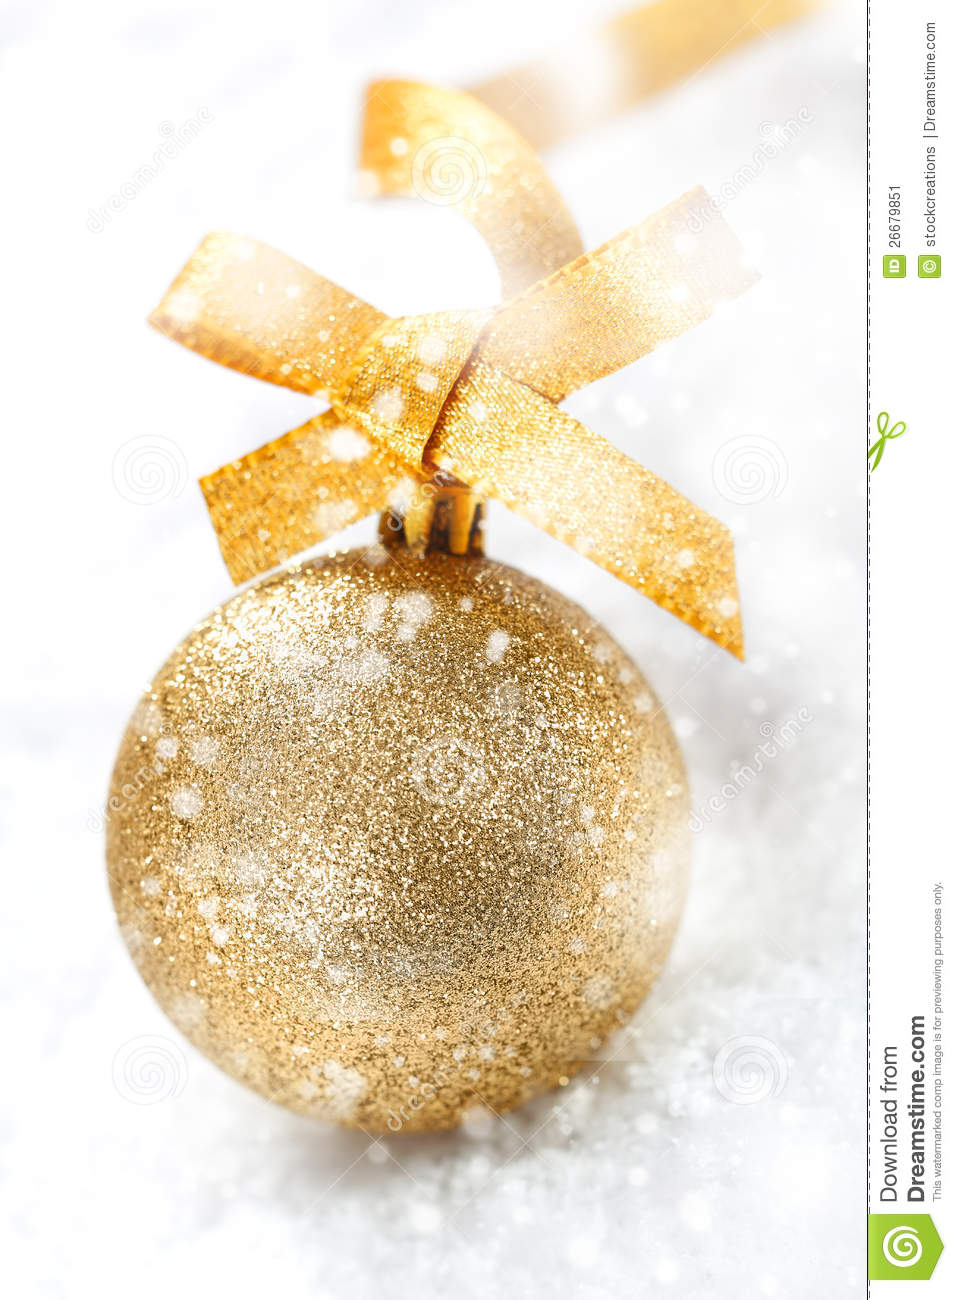 Free Download Of Christmas Wallpaper With Snow Falling Gold Christmas Ball In Falling Snow Stock Image Image Of